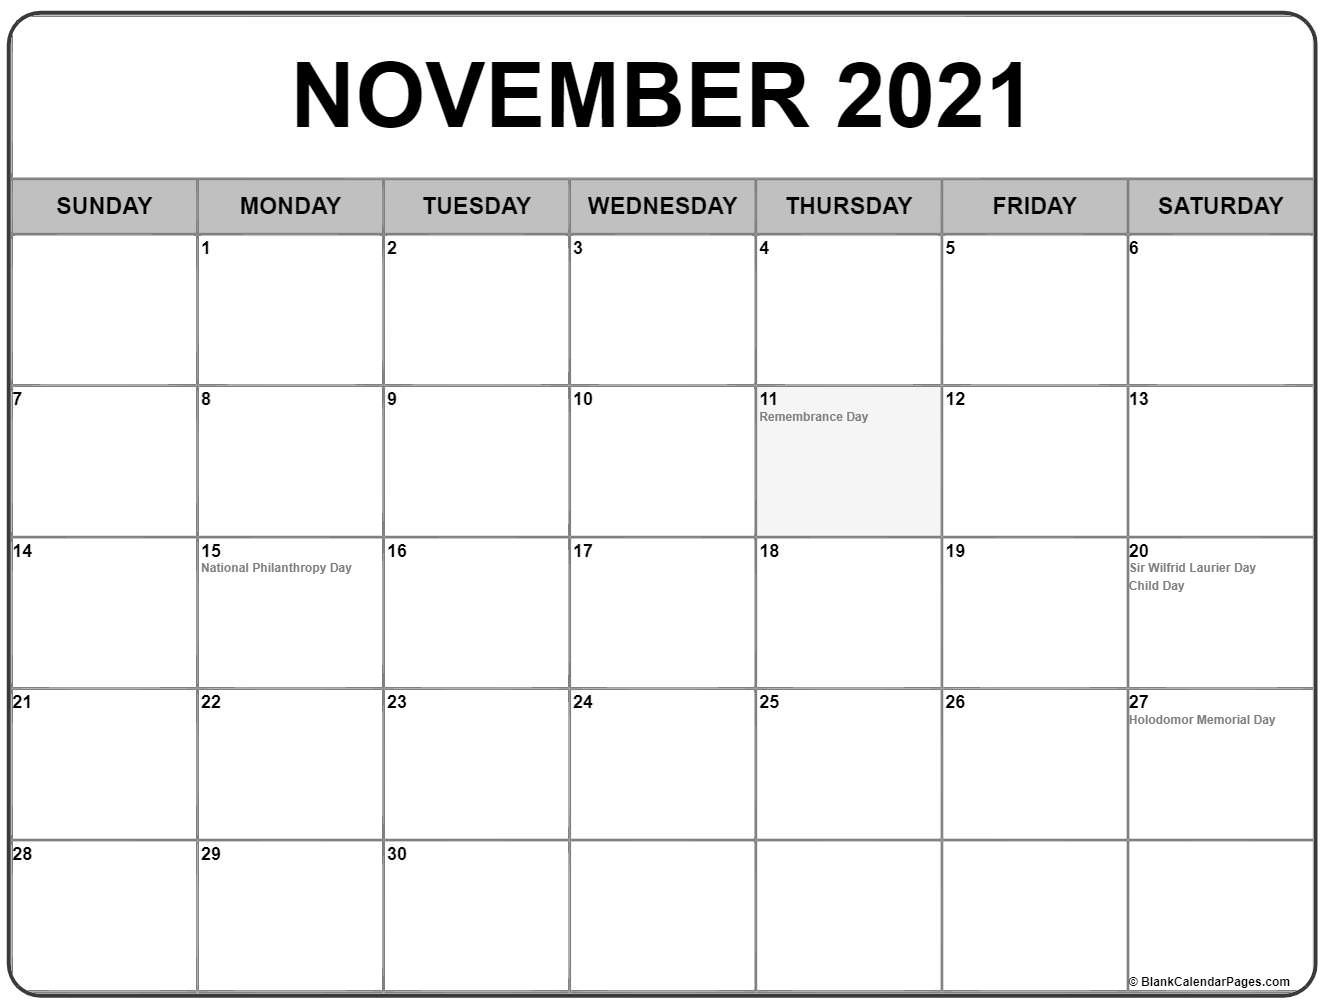 November 2021 Canadian holidays calendar